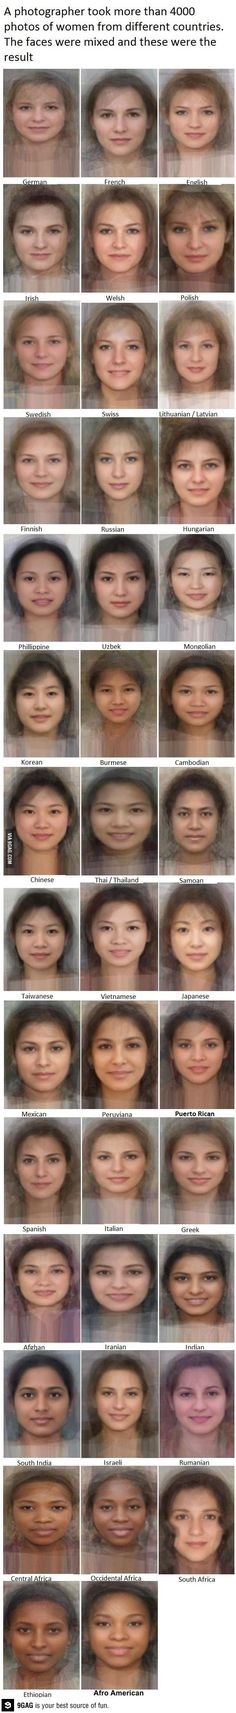 Average face from women from different countries - Awesome!